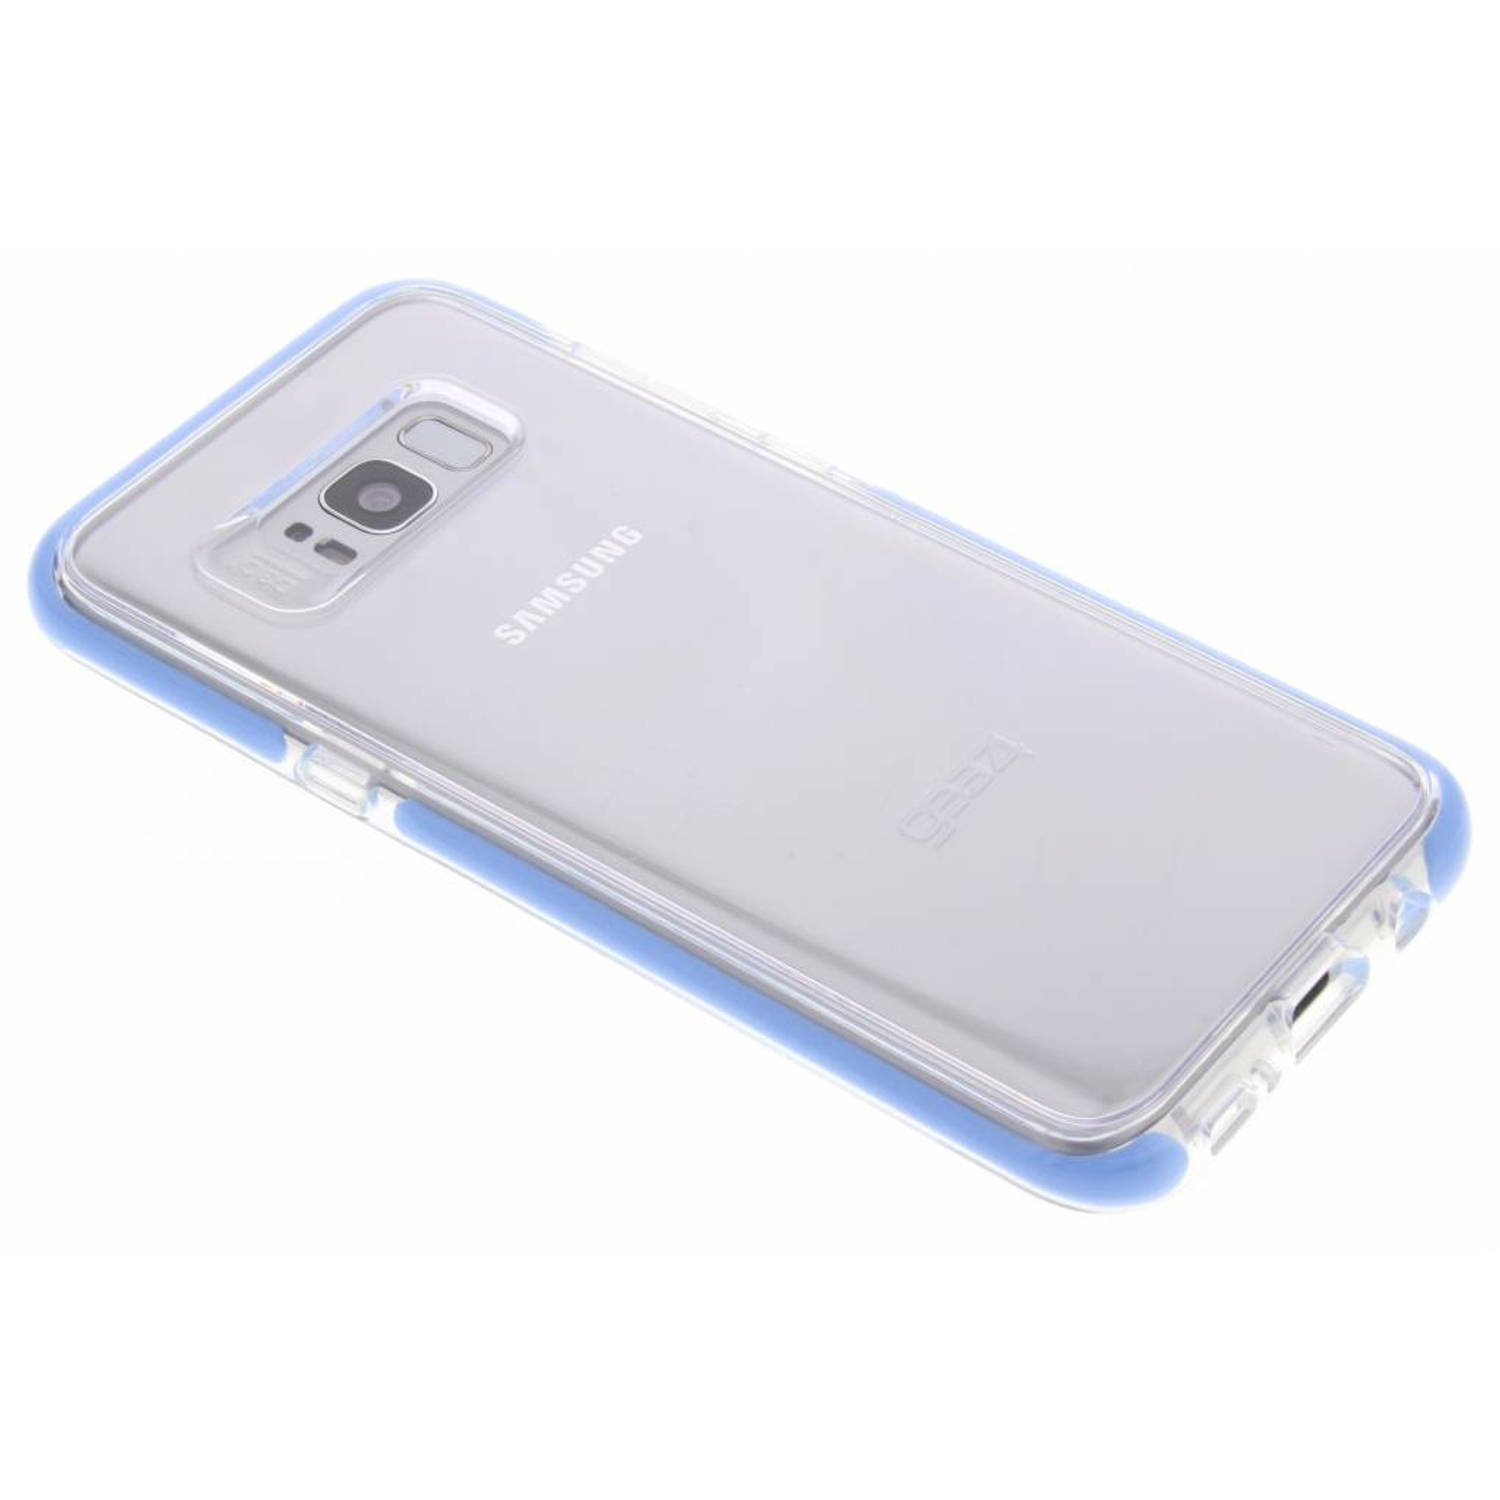 Blauwe D3O Piccadilly Case voor de Samsung Galaxy S8 Plus